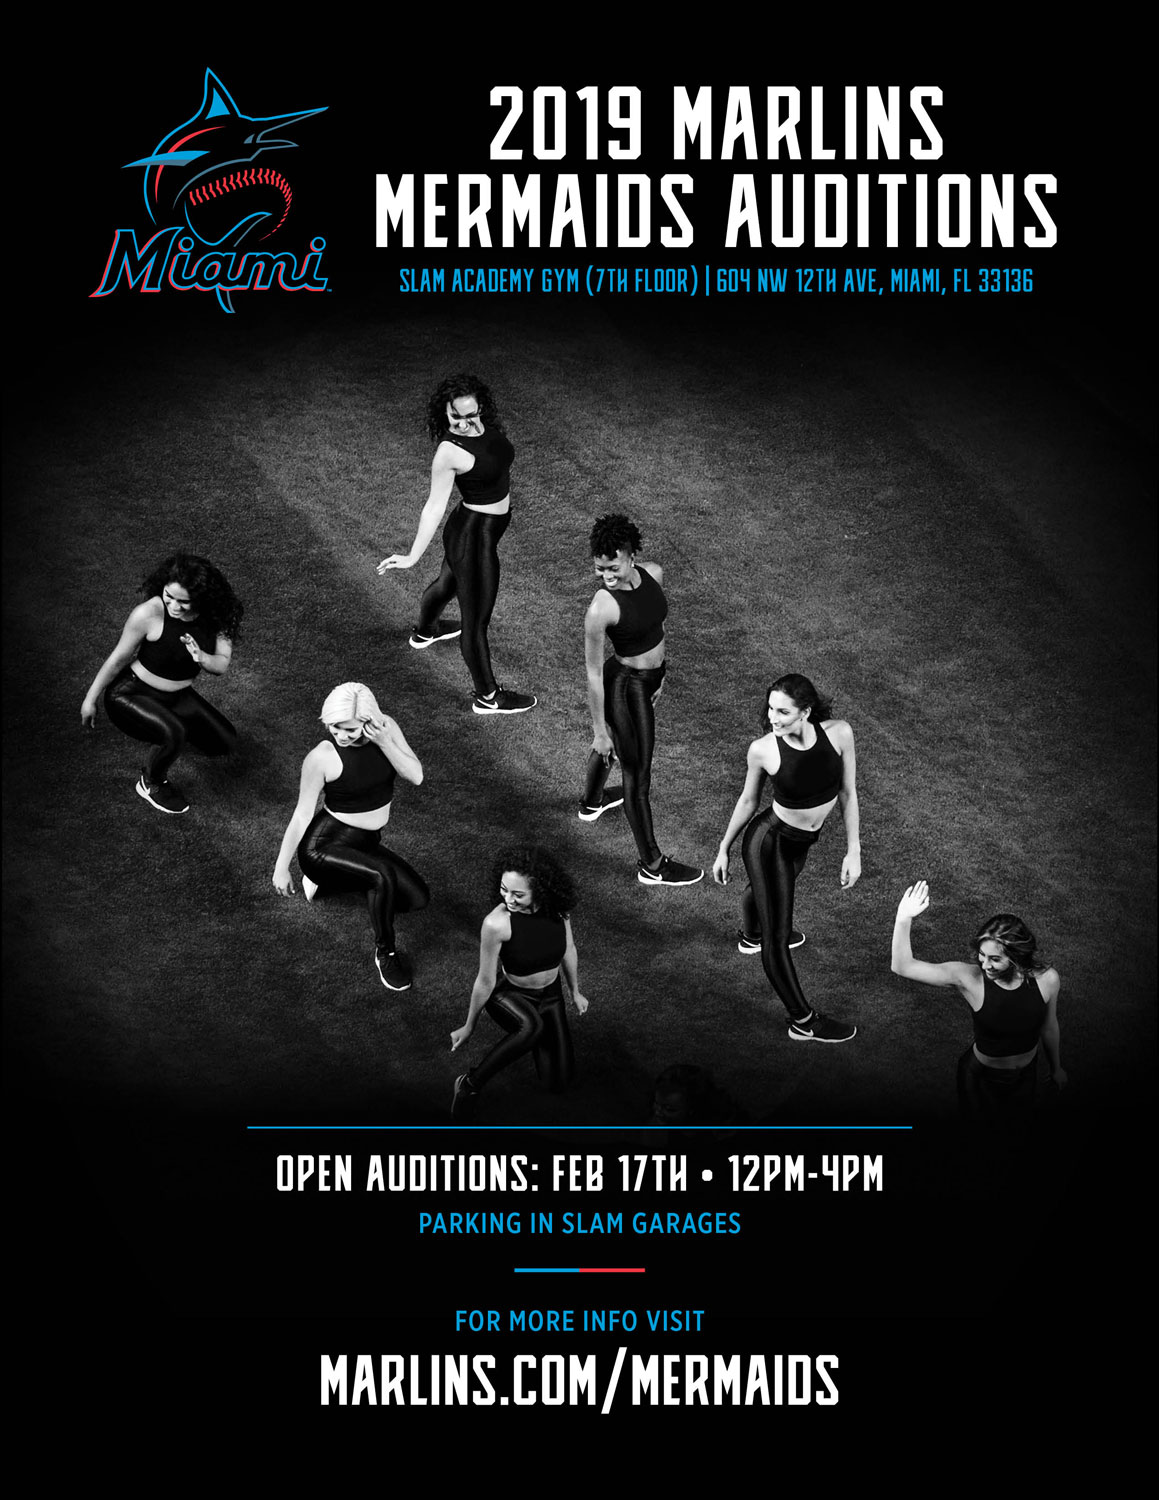 GPE071_2019_MermaidAuditions_Flyer_Finaltest2.jpg